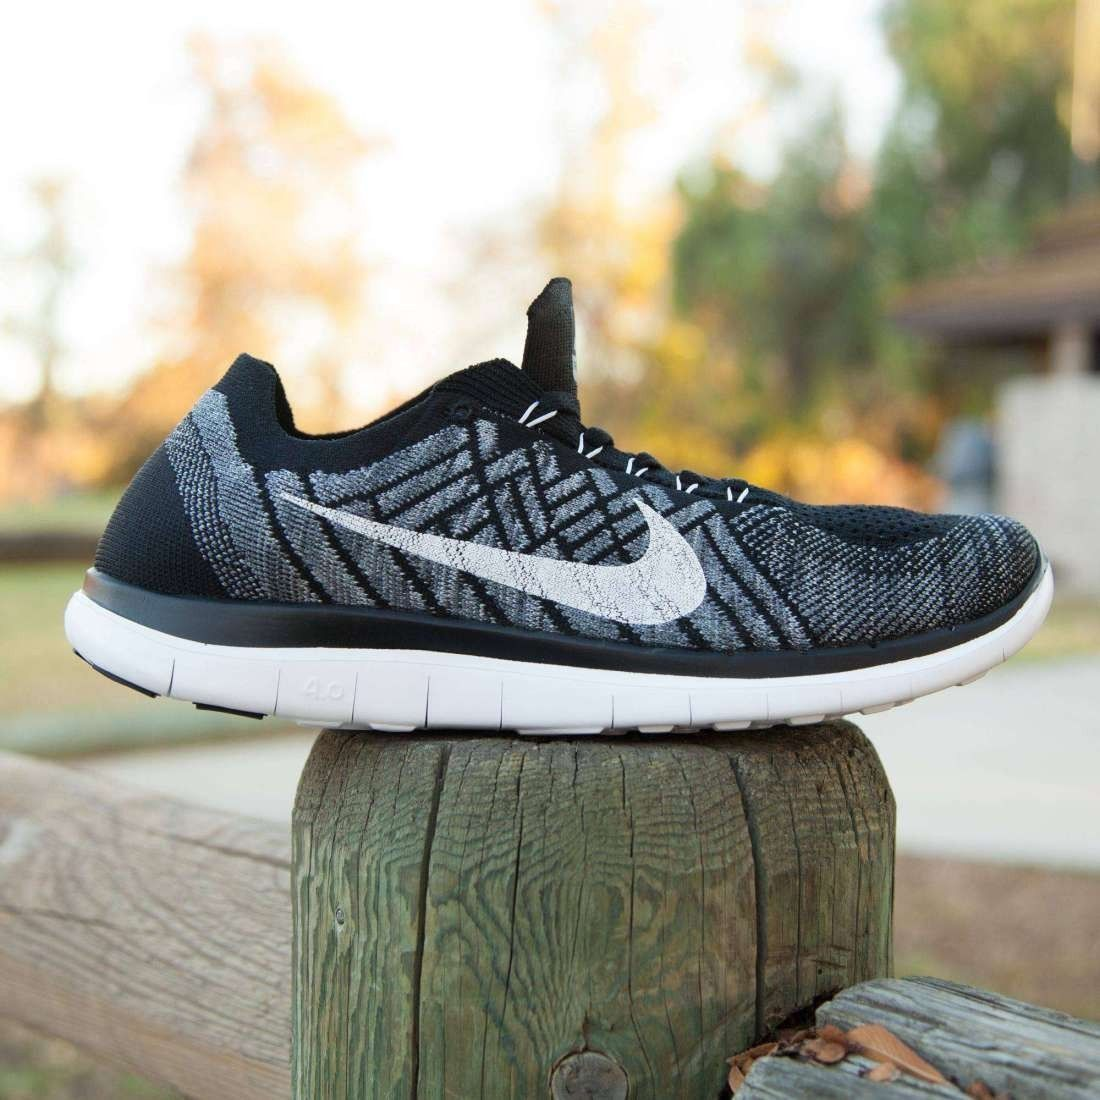 "Nike FREE FLYKNIT 4.0 MENs USszs:7; 8; 11; 11.5 ""GRIFON"" running shoe 717075-001, used for sale  USA"